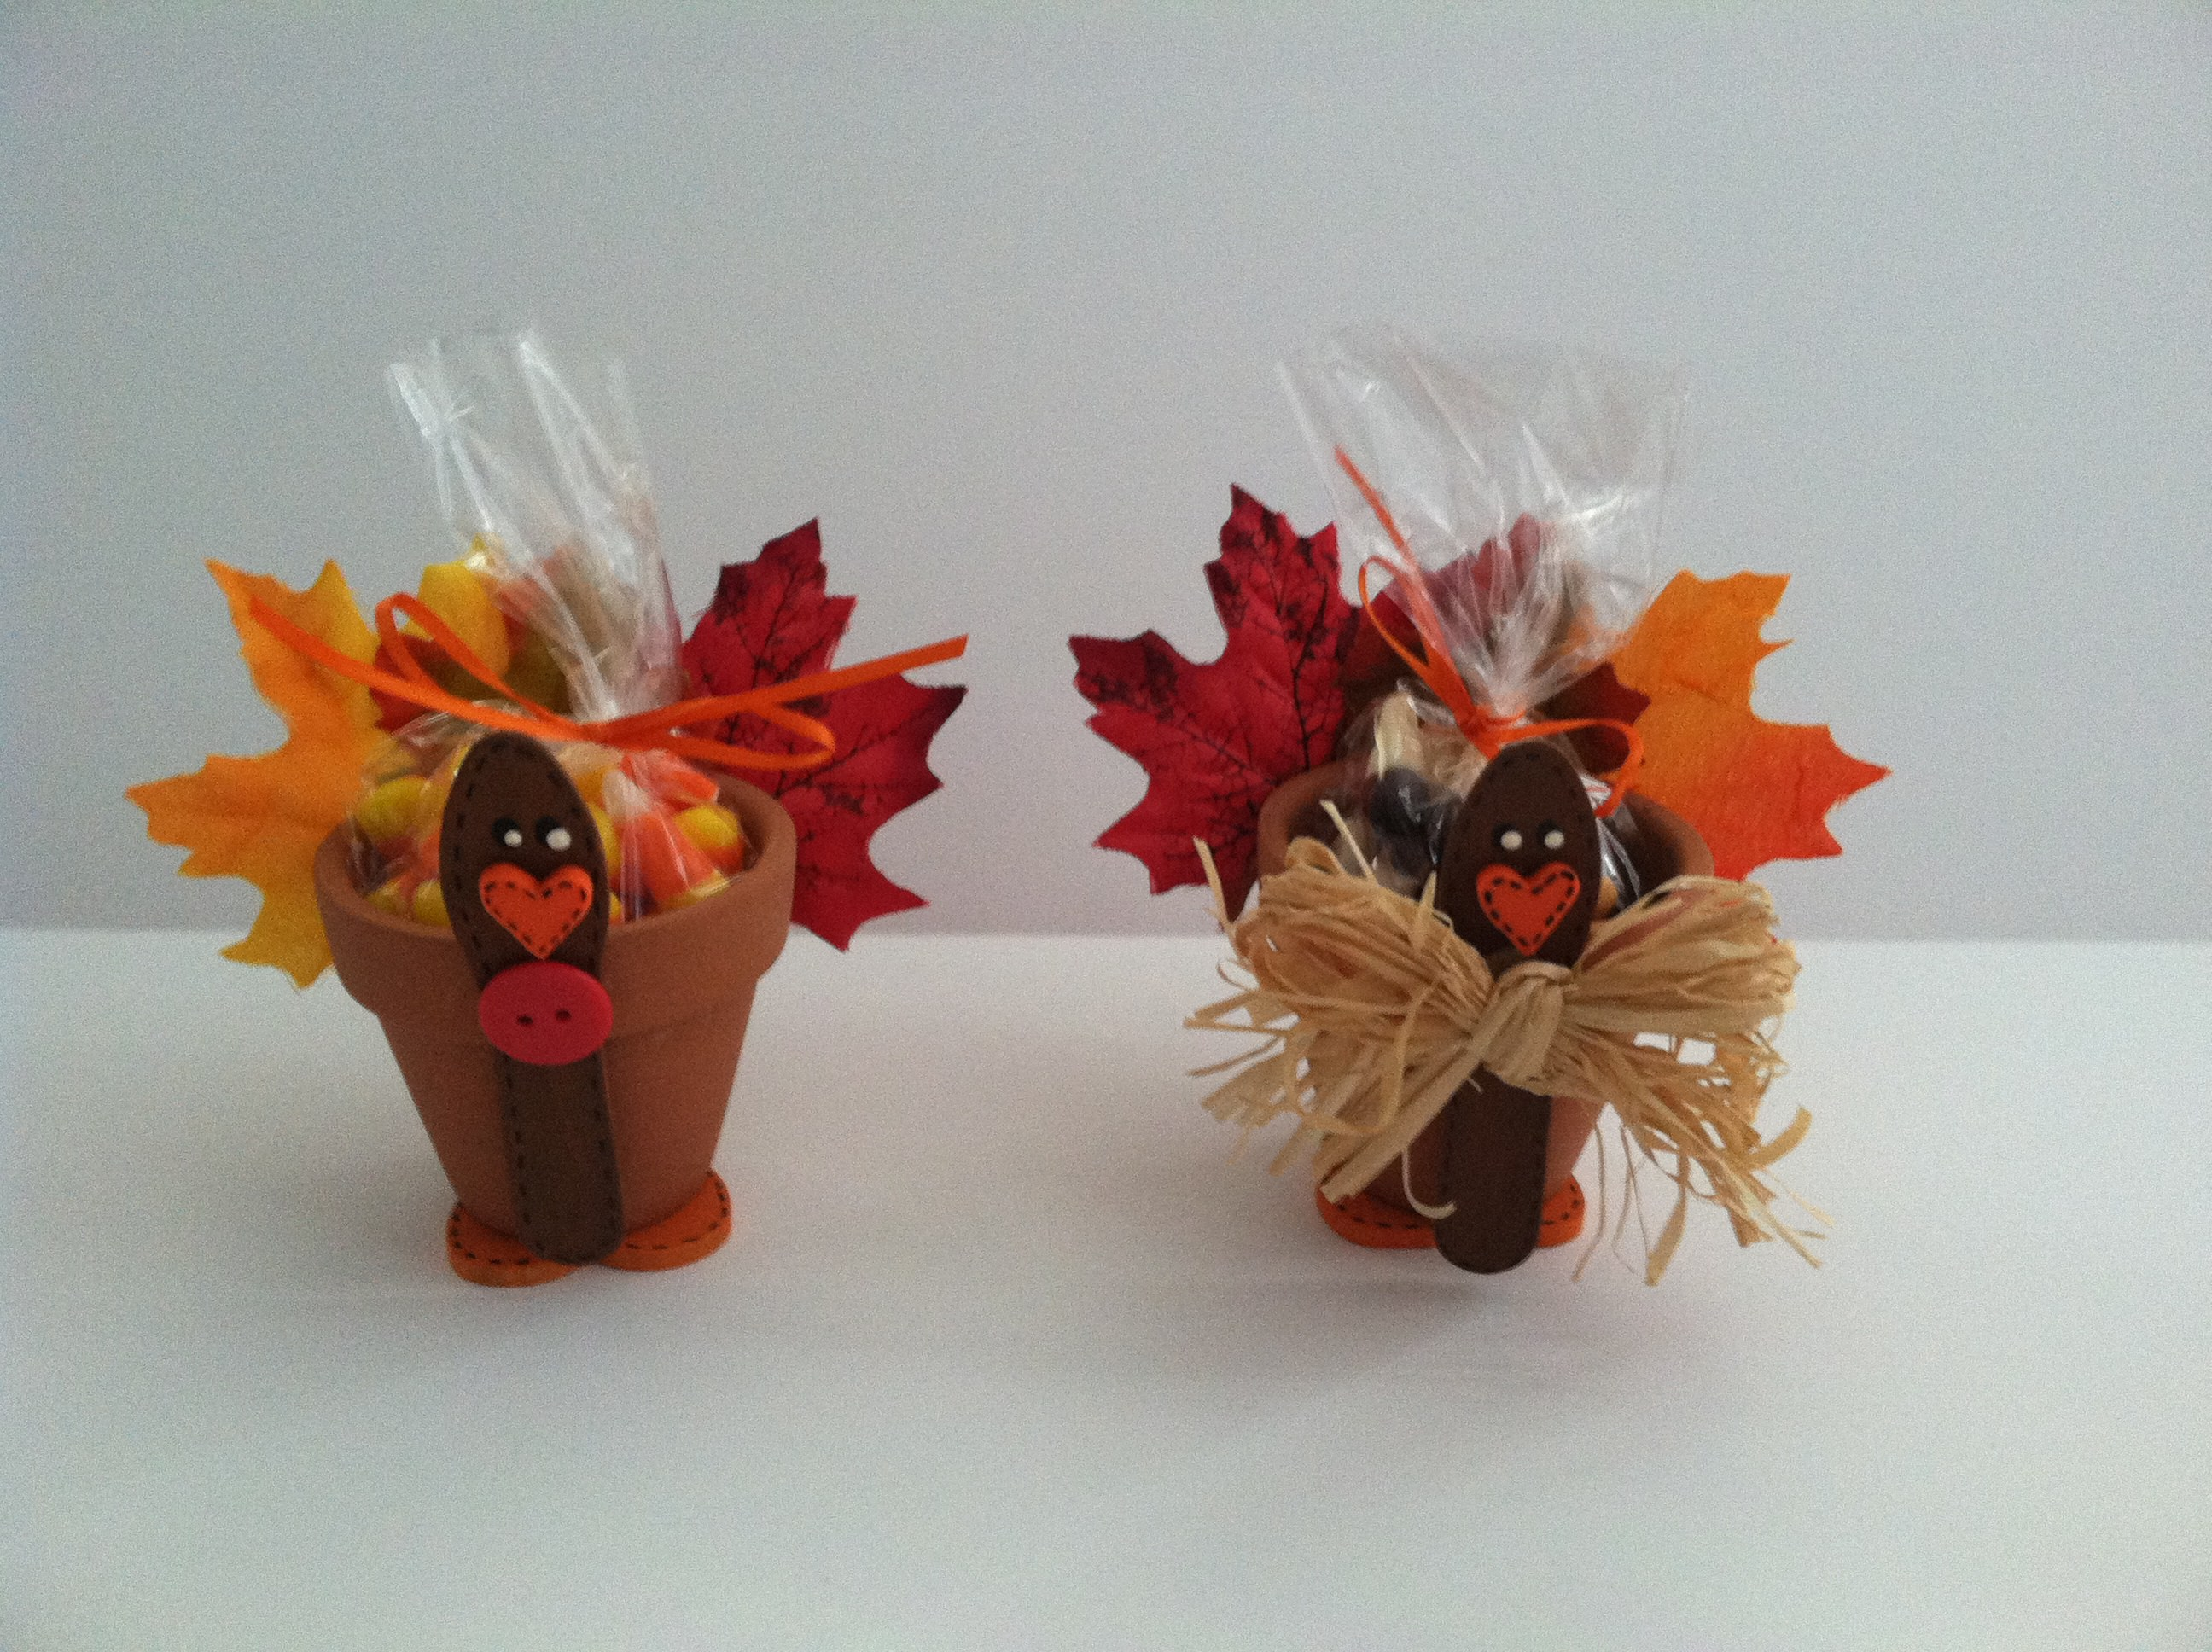 These clay pot turkeys are just one of the adorable Thanksgiving turkey crafts you can make with leaves. Click to find links and instructions for them all.